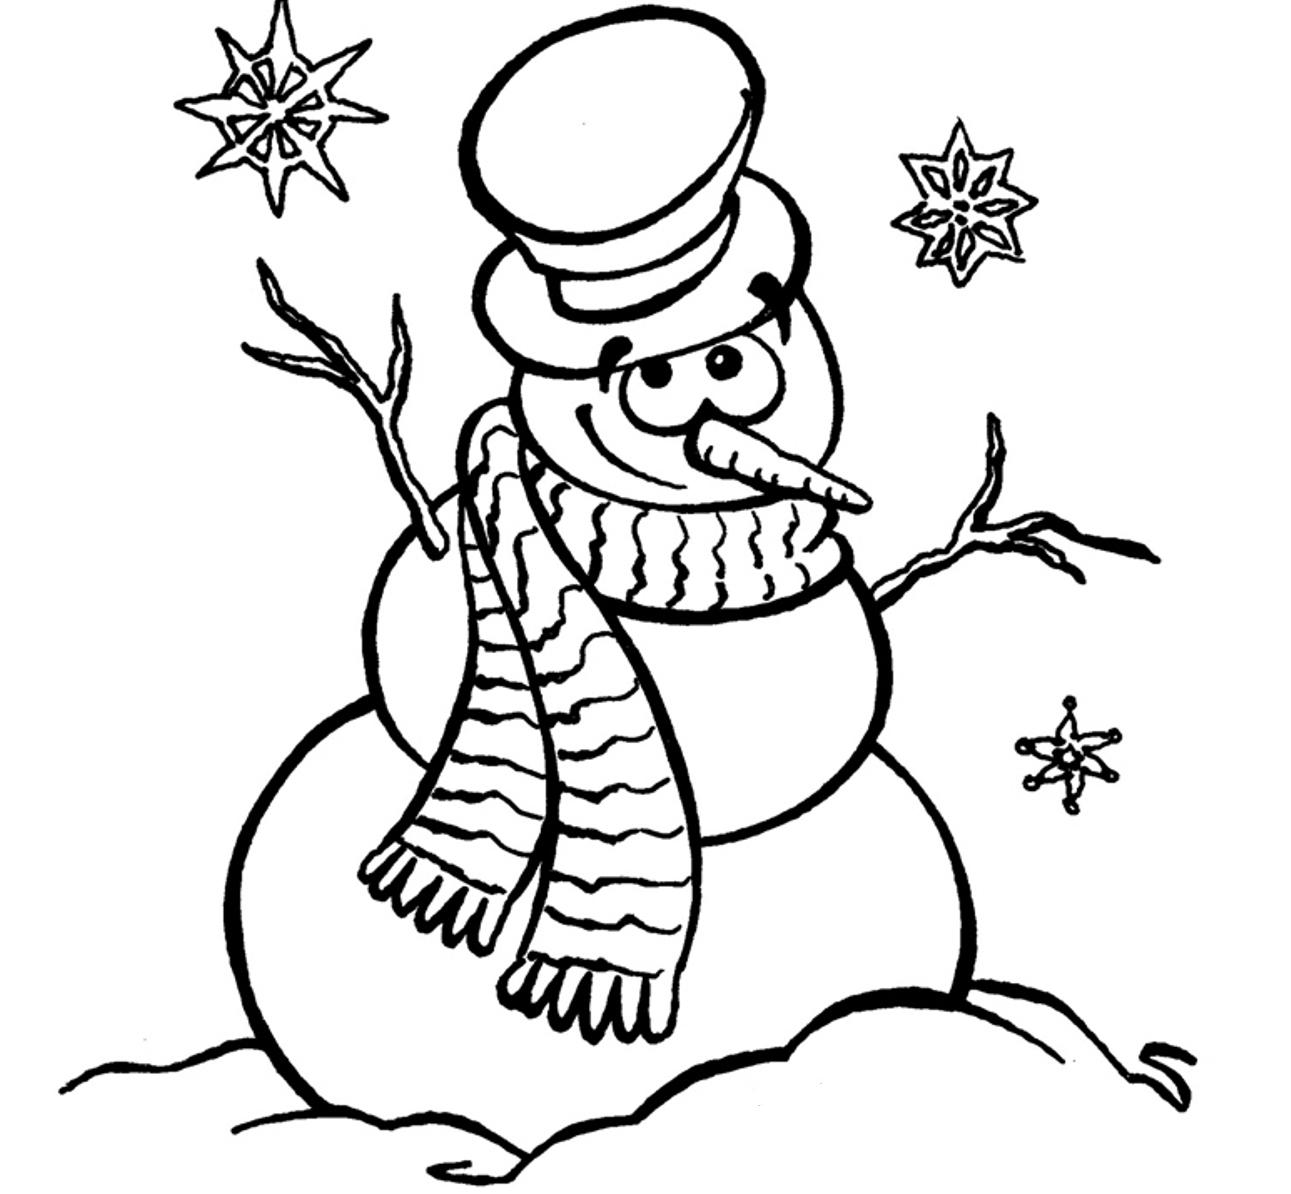 free snowman coloring pages to print for kids download print and color - Coloring Printouts